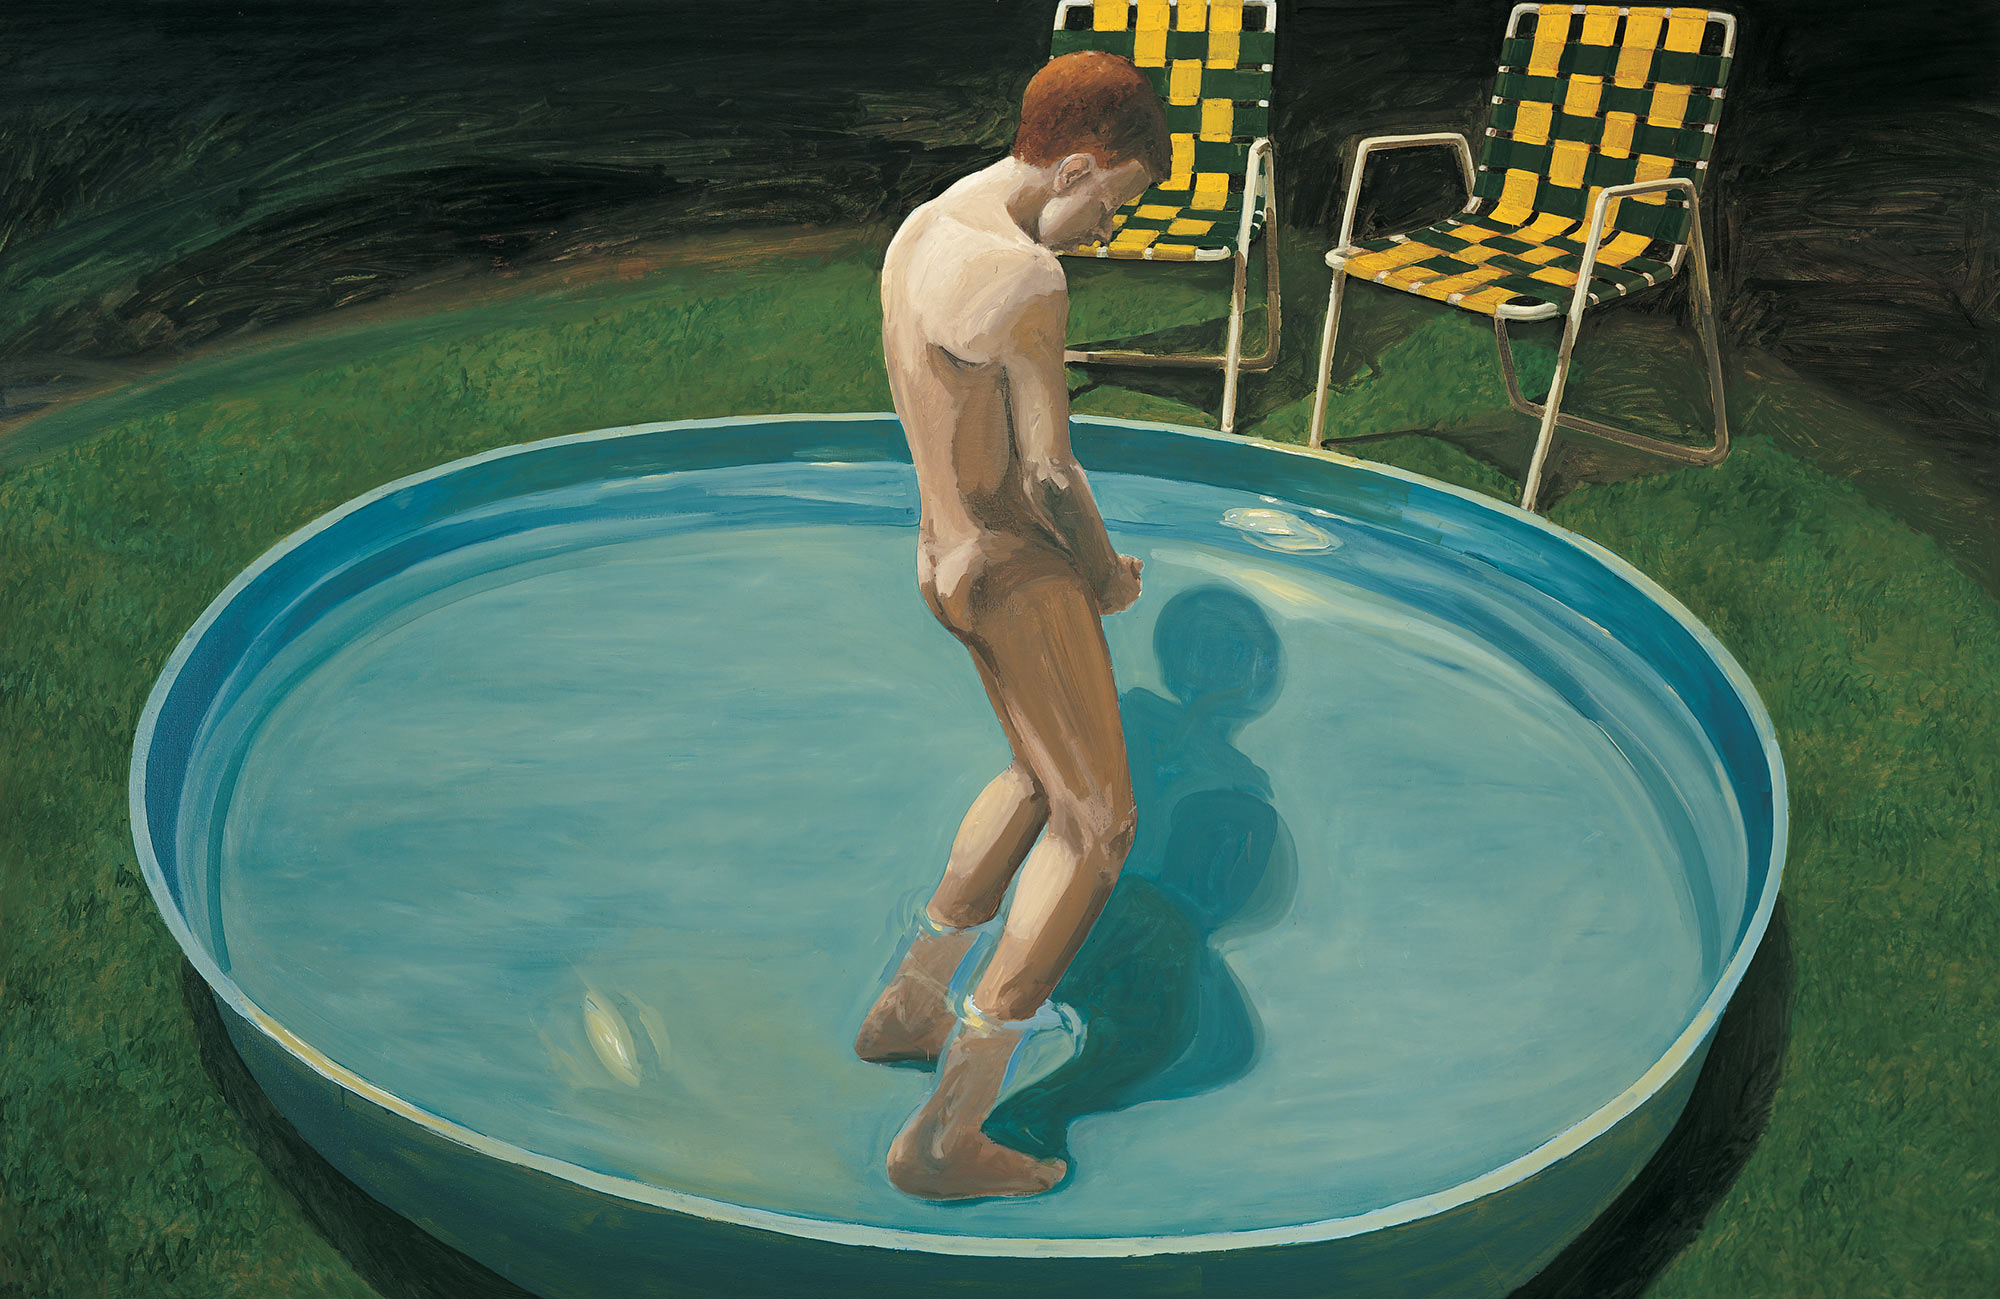 Sleepwalker, 1979. Oil on Canvas. 69 x 105 in. (175 x 267 cm.)